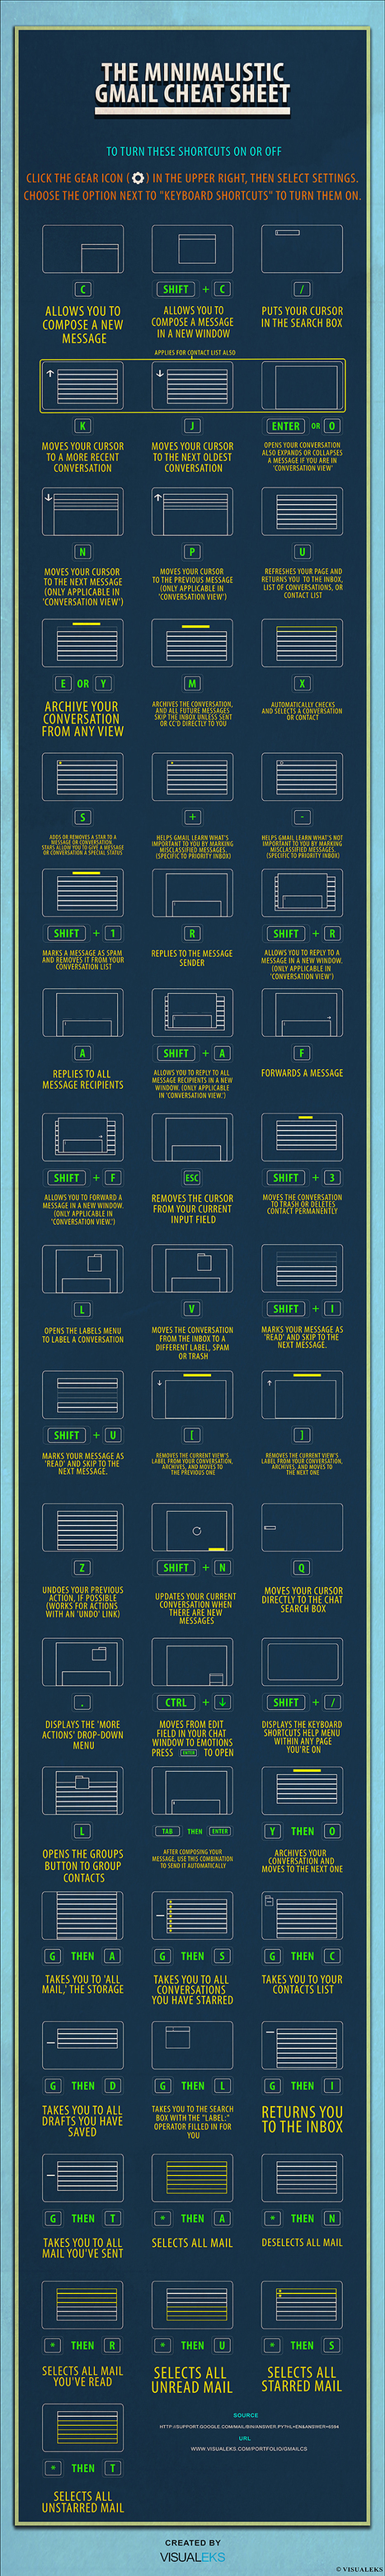 Gmail Tips and Shortcuts [Infographic] | BestInfographics.co | The Best Infographics | Scoop.it